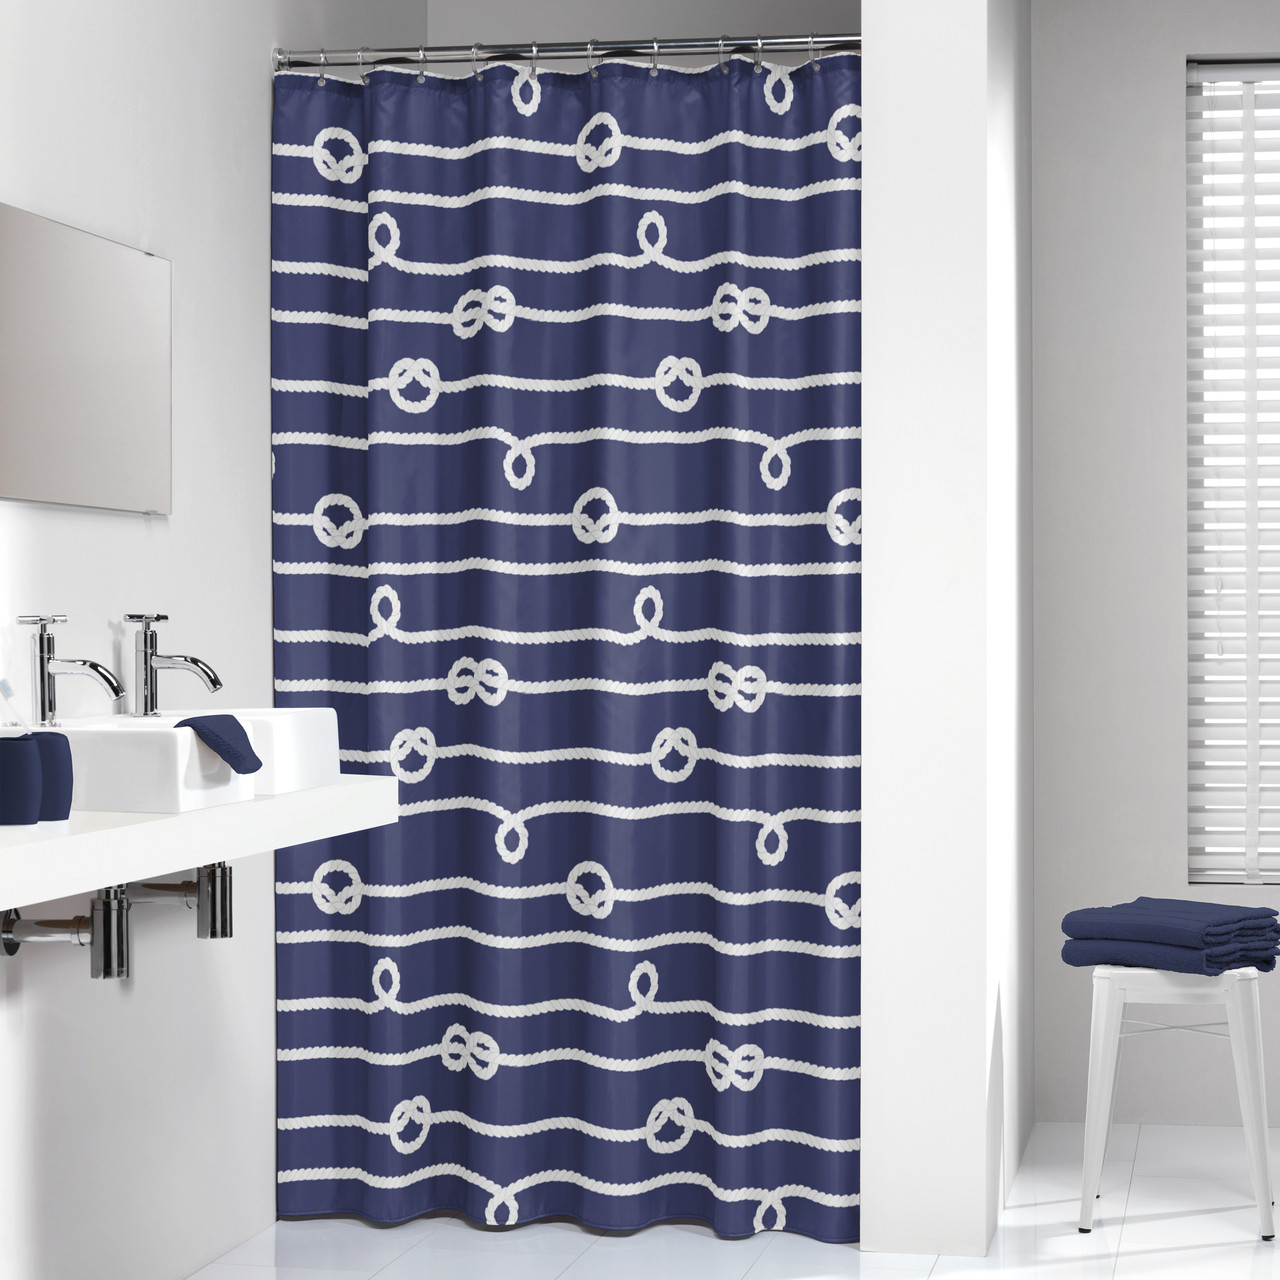 Charmant Extra Long Shower Curtain 72 X 78 Inch Sealskin Nautical Rope Blue Fabric